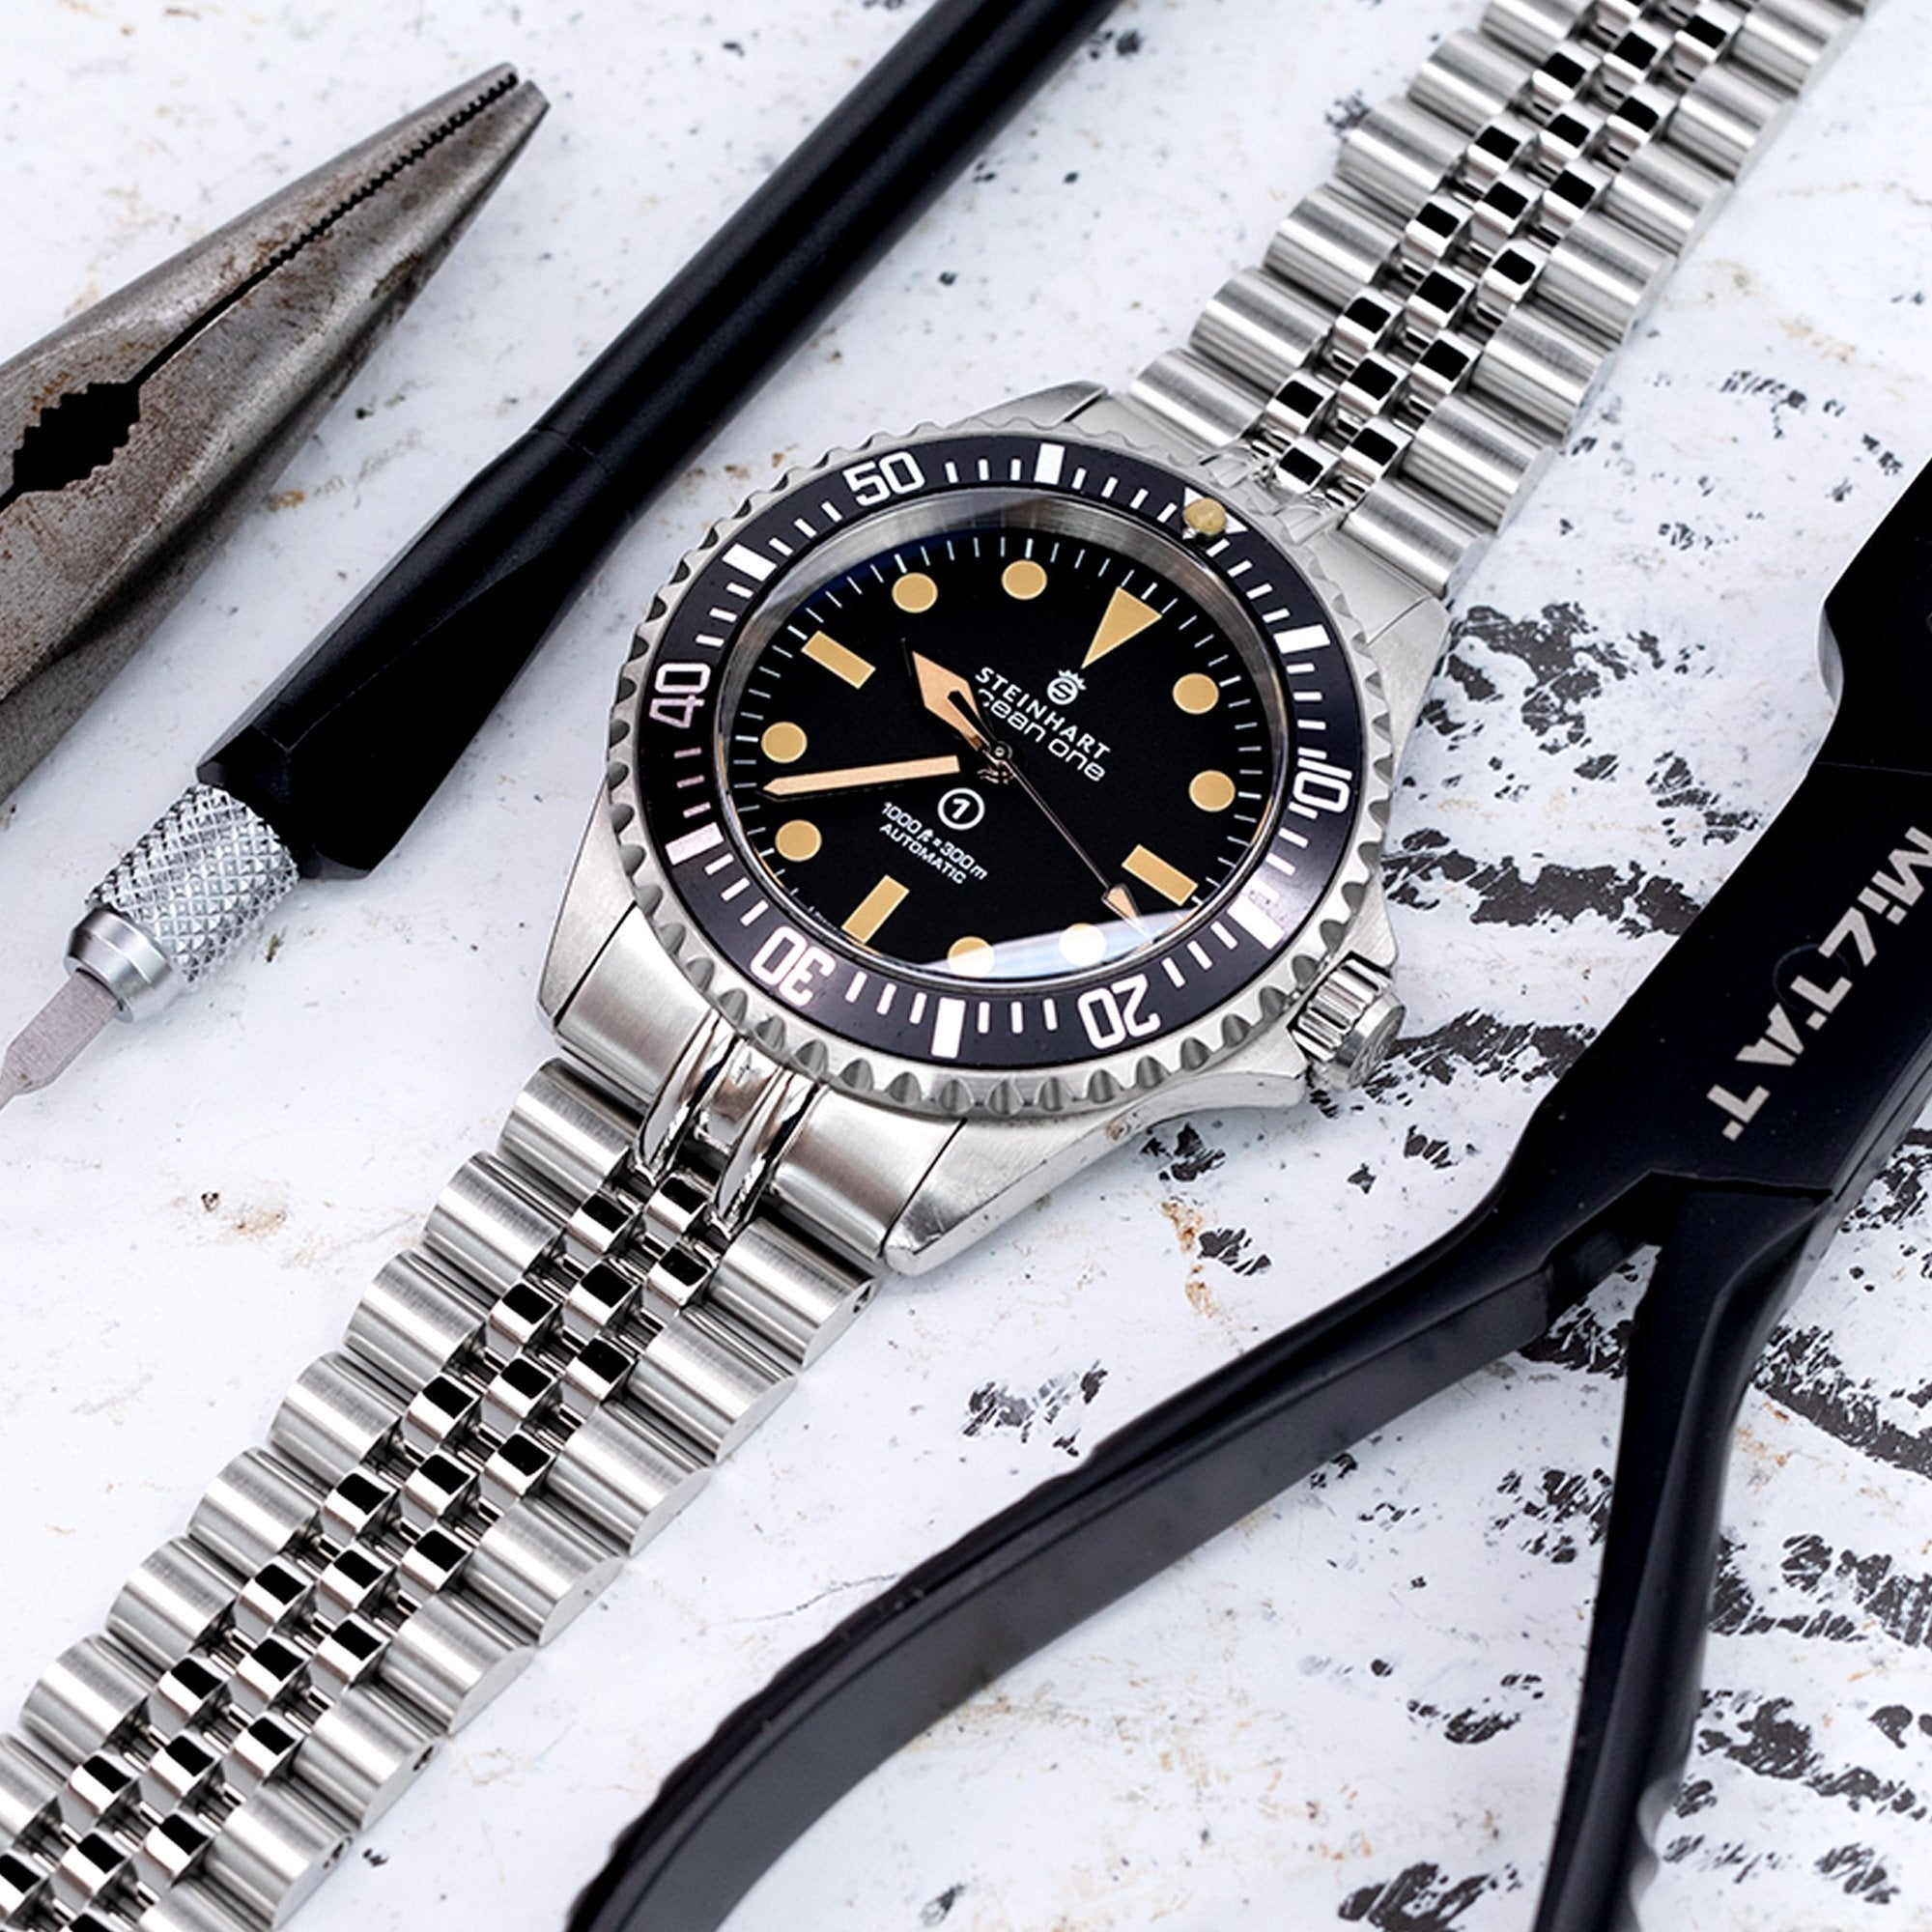 22mm Super-J Louis 316L Stainless Steel Watch Bracelet for Steinhart Sub. Black Brushed V-Clasp Strapcode Watch Bands